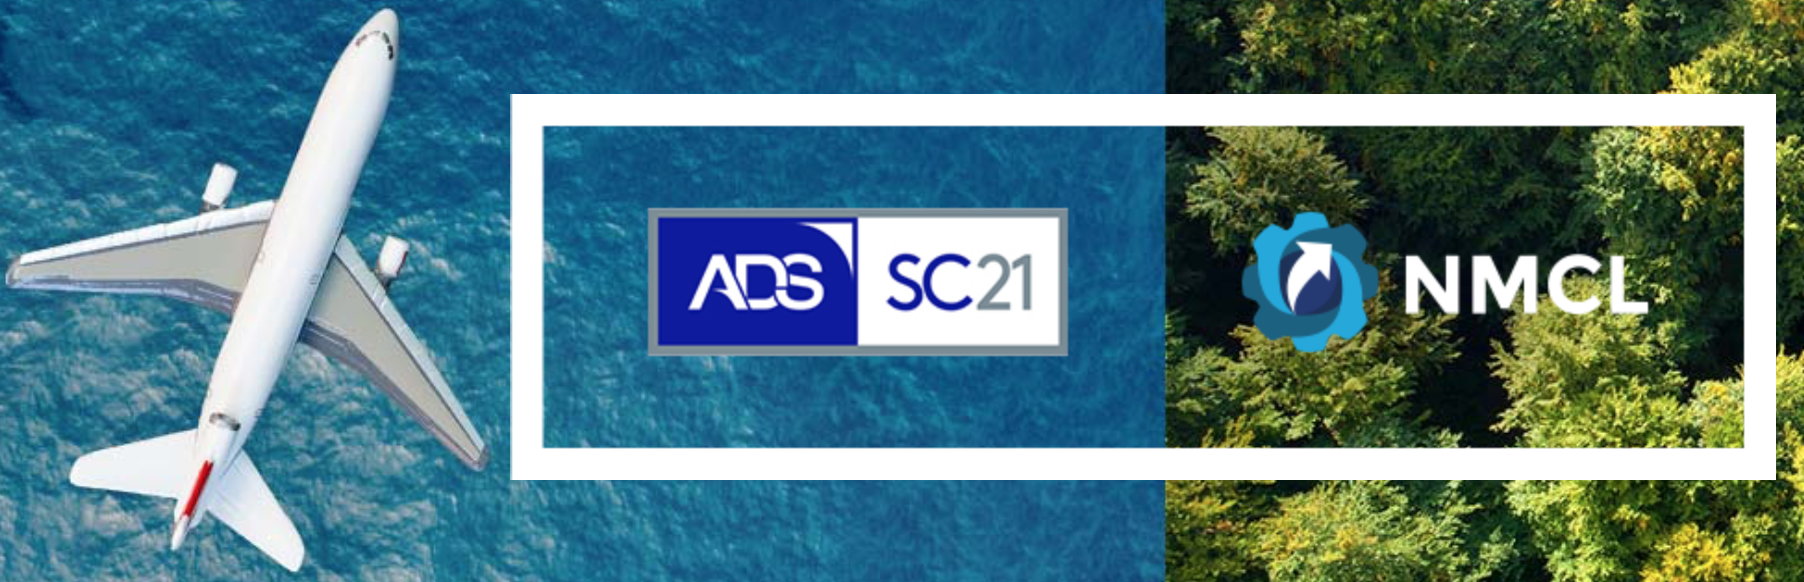 We're delighted to be approved providers on the ADS SC21 Competitiveness Programme